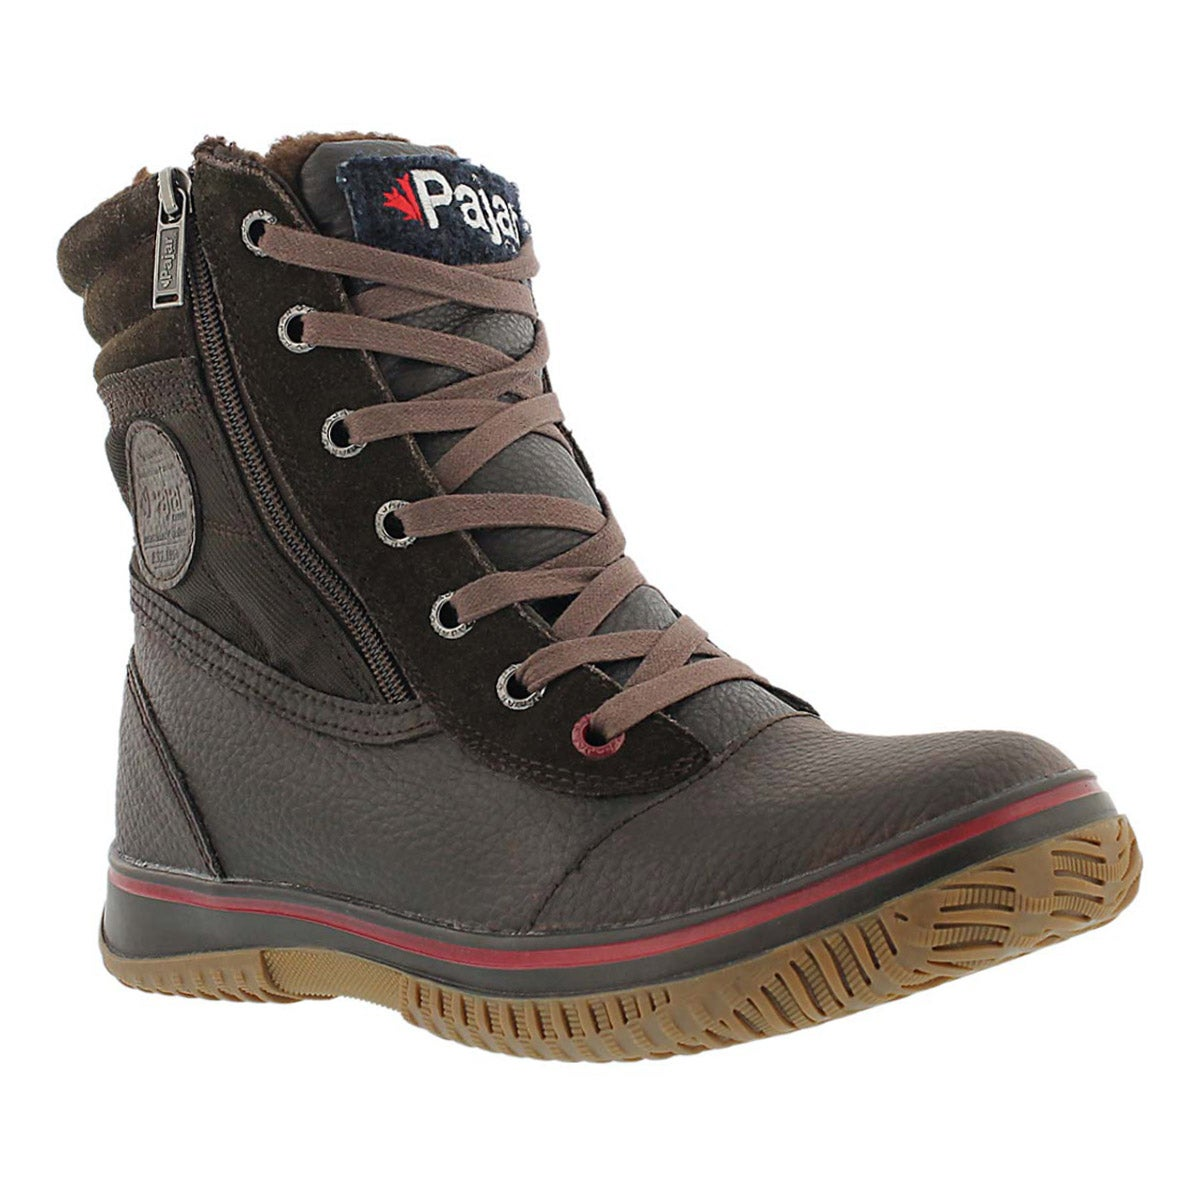 Mns Trooper dk brn wtrpf mid winter boot